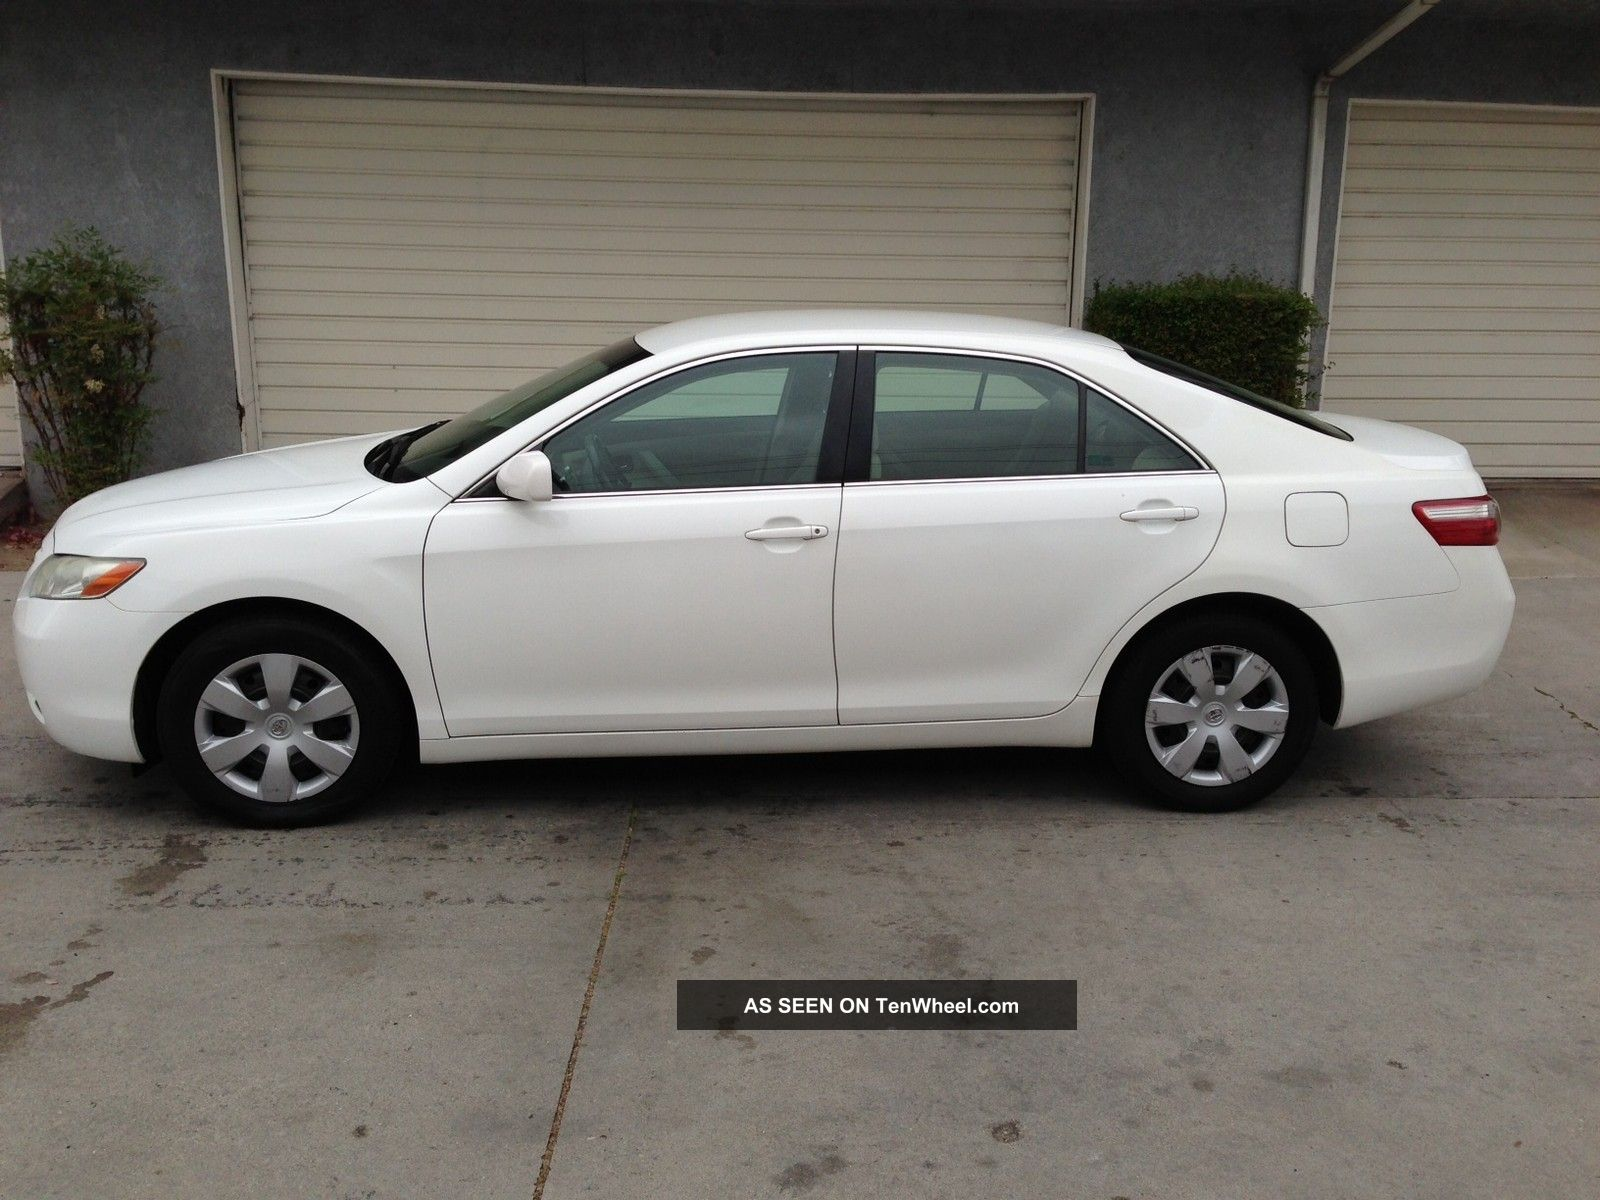 2007 White Toyota Camry Le With Extended Warrantly Camry photo 1 ...